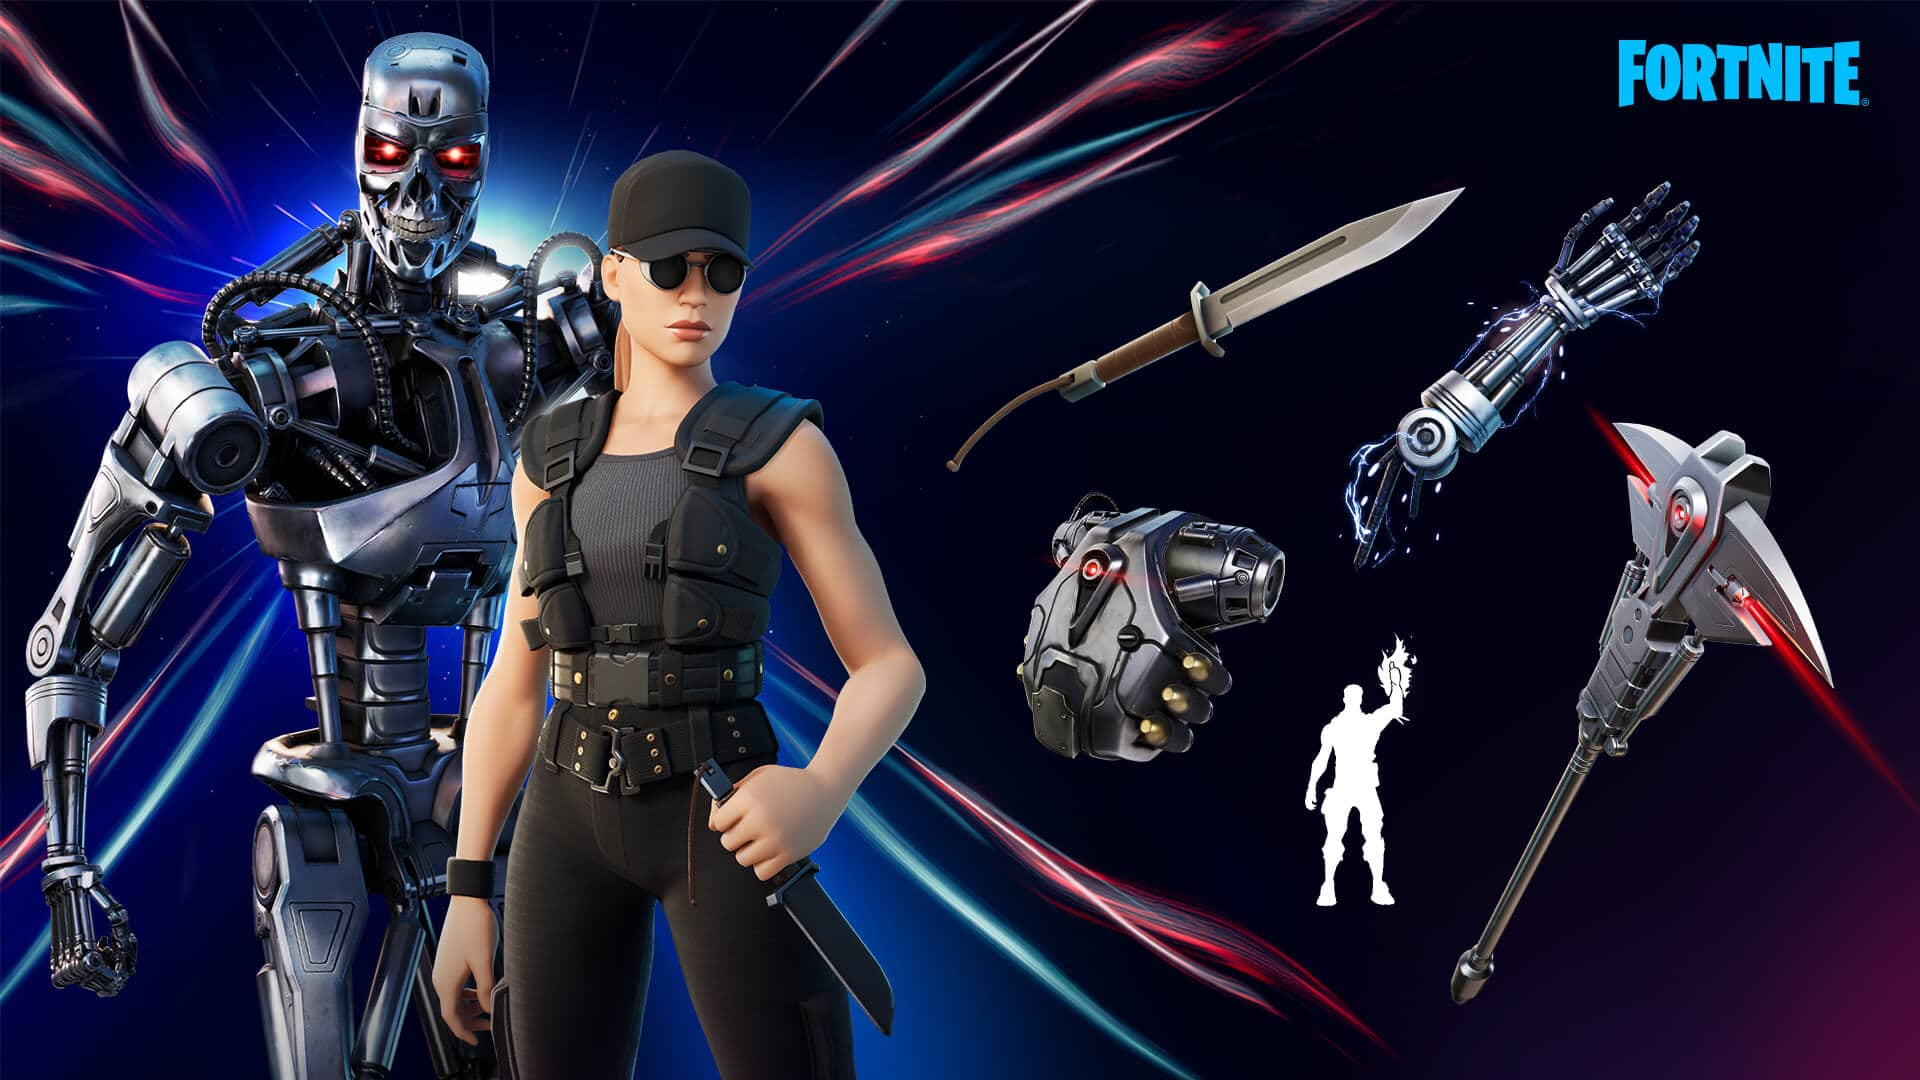 Fortnite ganha skins de Exterminador do Futuro e Sarah Connor